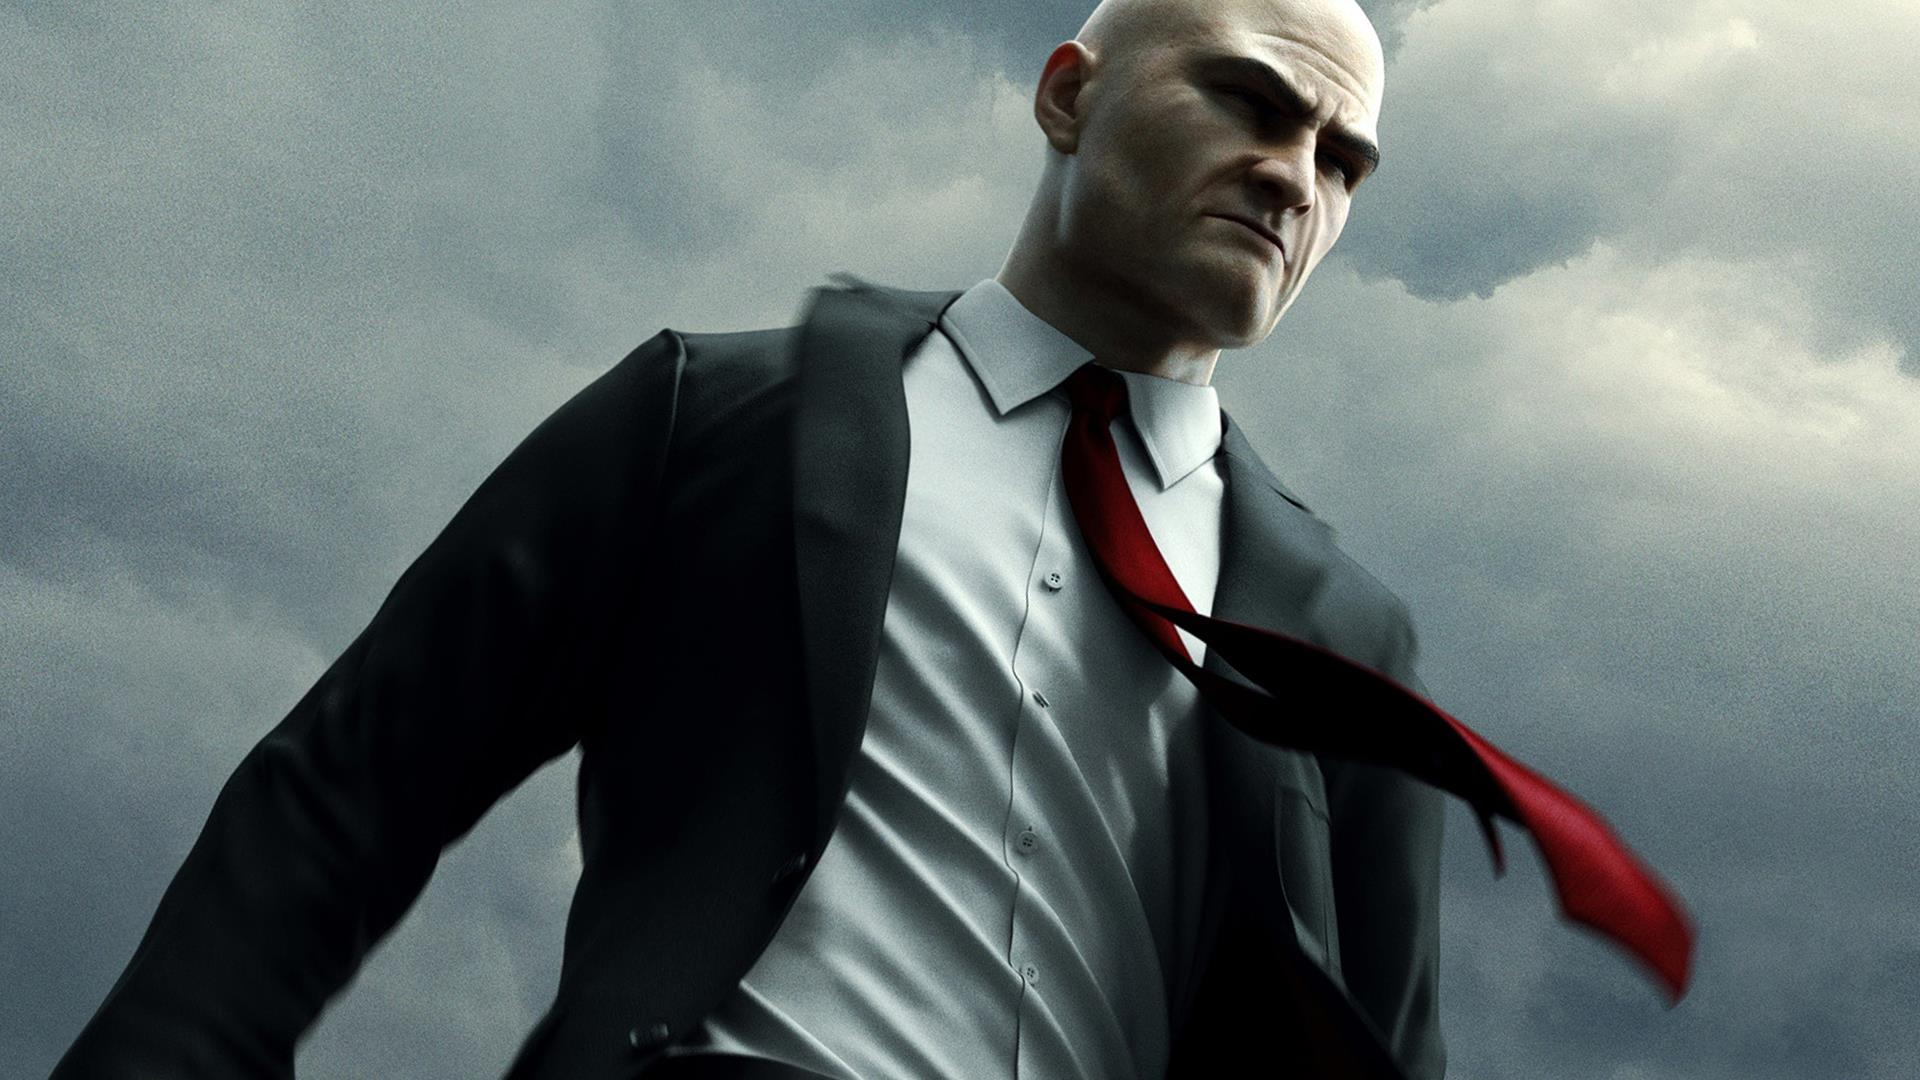 Hitman: Absolution HD Wallpaper | Background Image | 1920x1080 | ID:373883 - Wallpaper Abyss